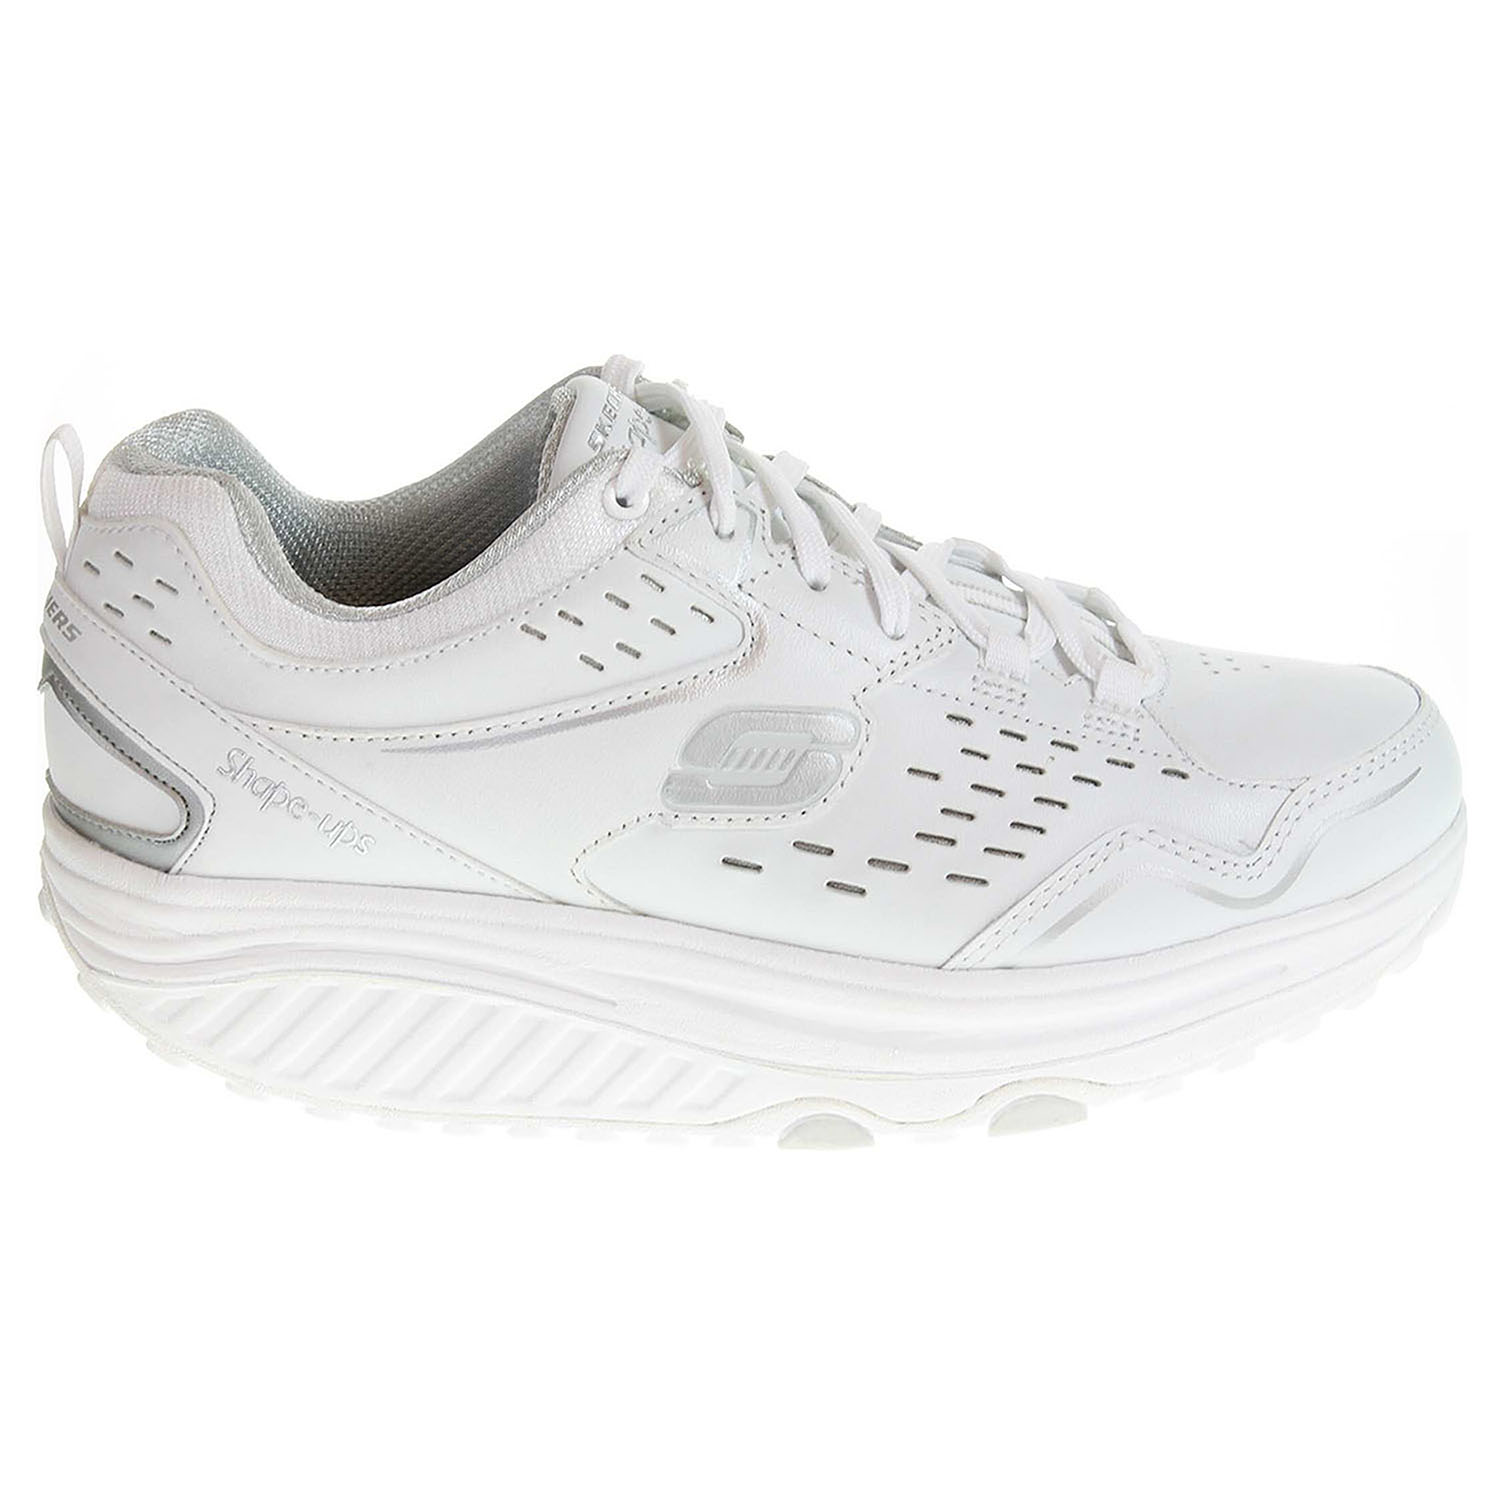 Skechers Perfect Comfort white-silver 37